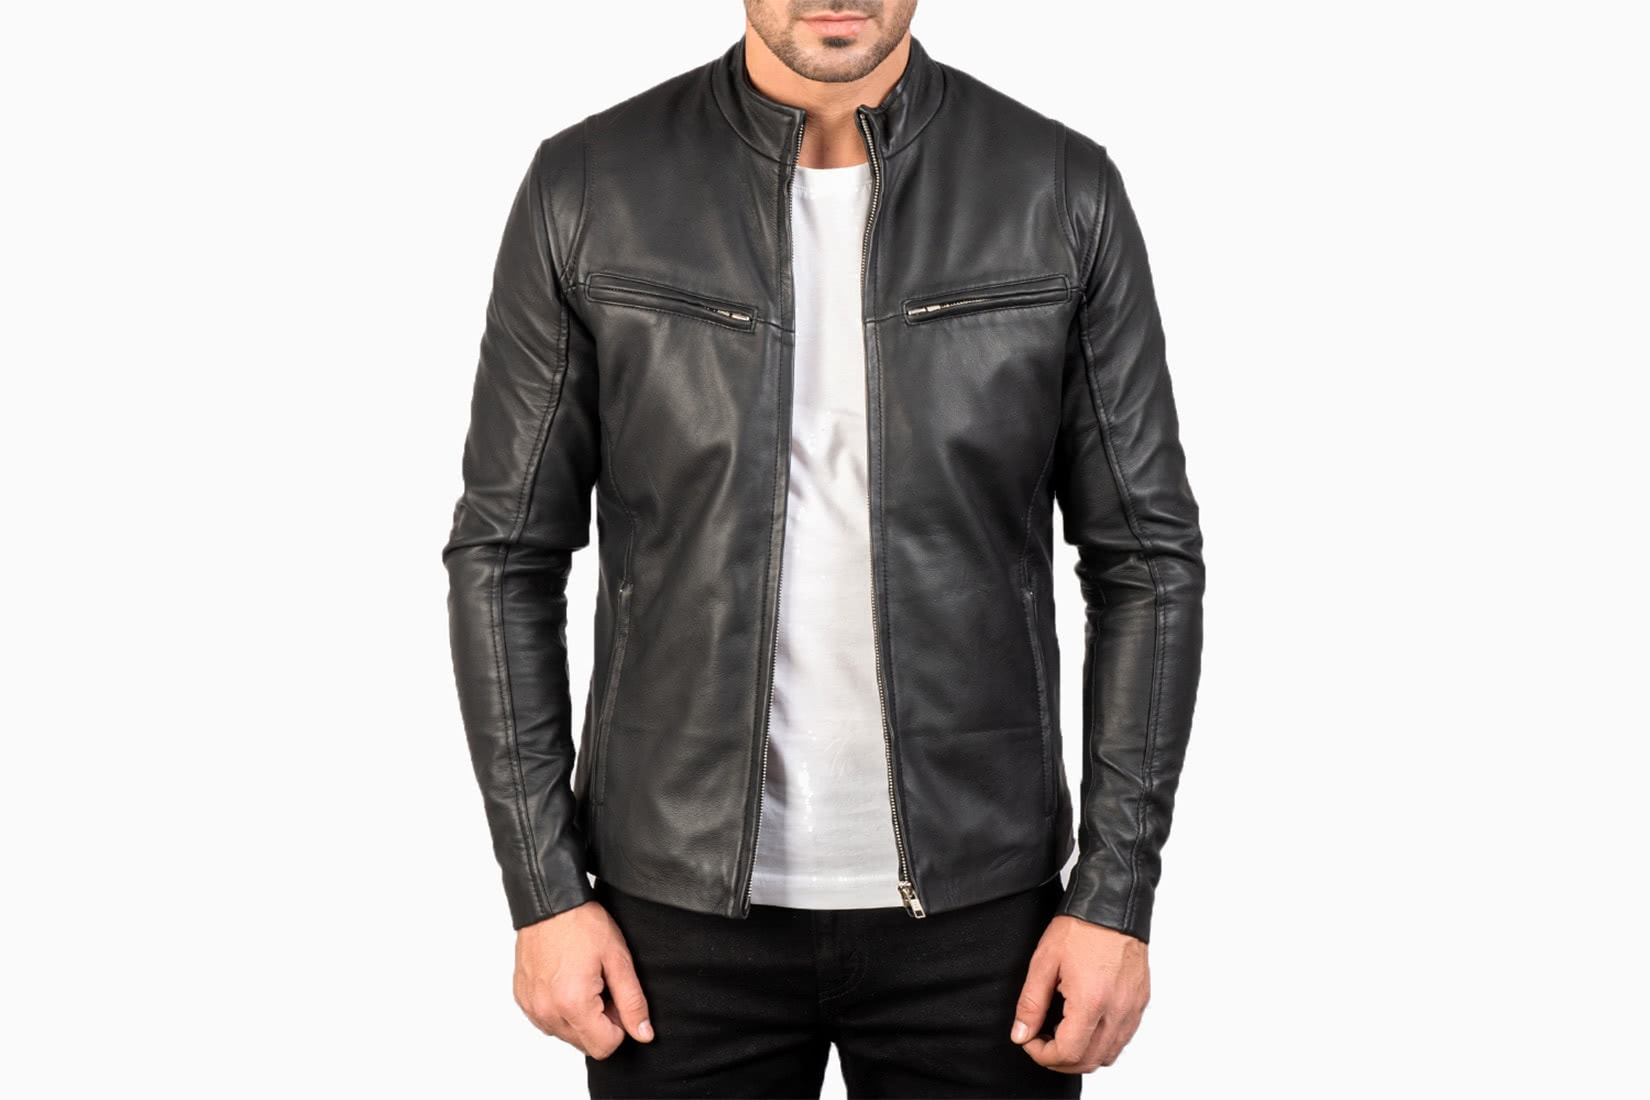 the jacket maker ionic leather review - Luxe Digital